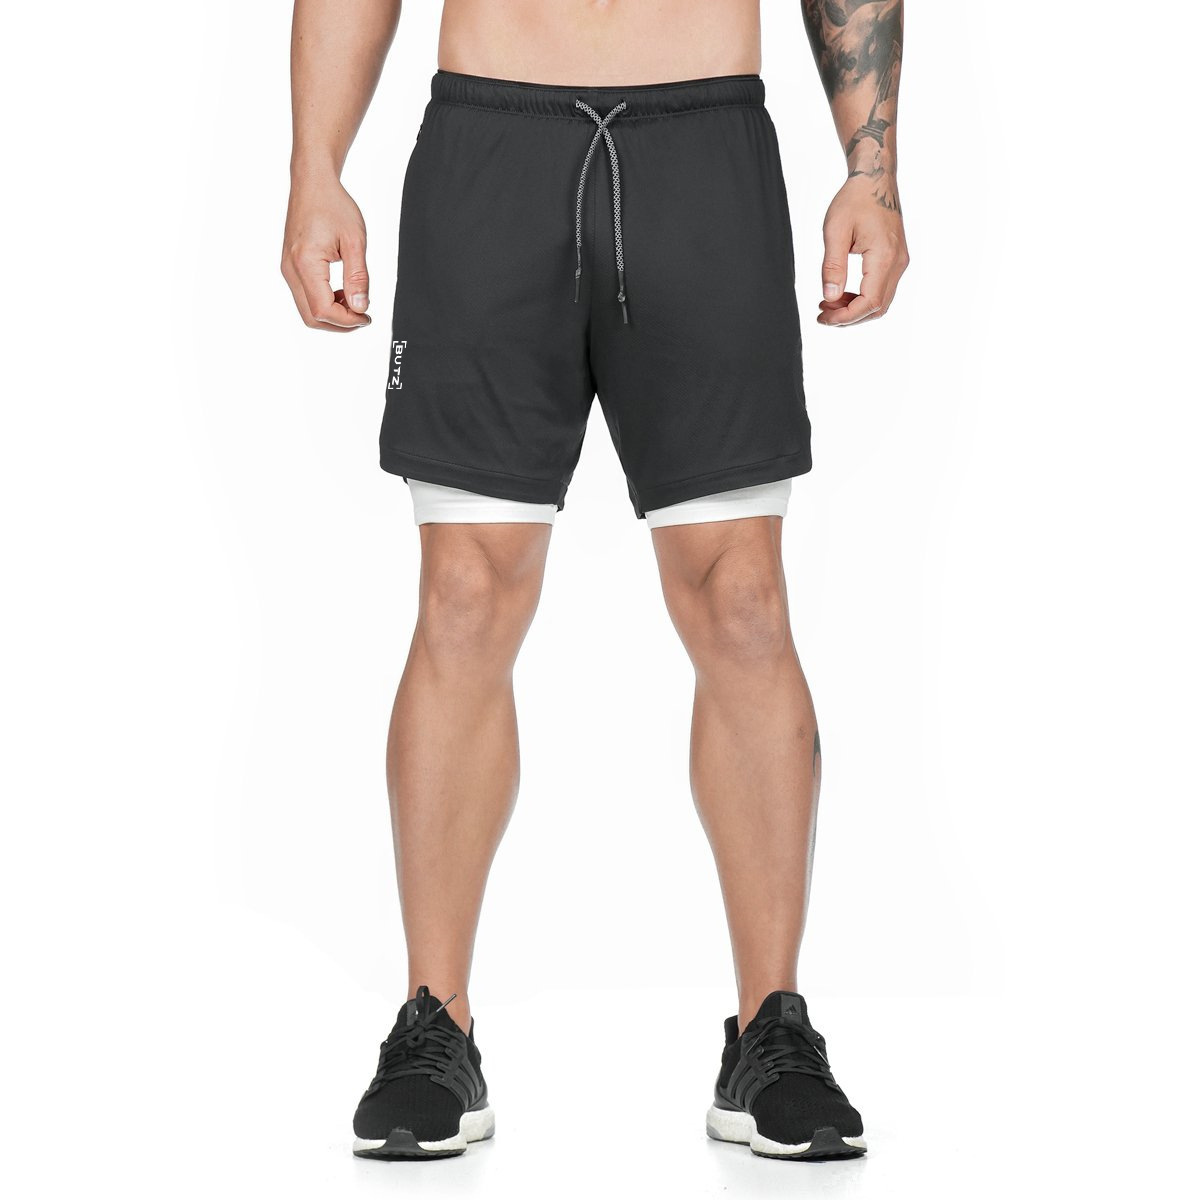 2020 Camo Running Shorts Men 2 In 1 Double-deck Quick Dry GYM Sport Shorts Fitness Jogging Workout Shorts Men Sports Short Pants